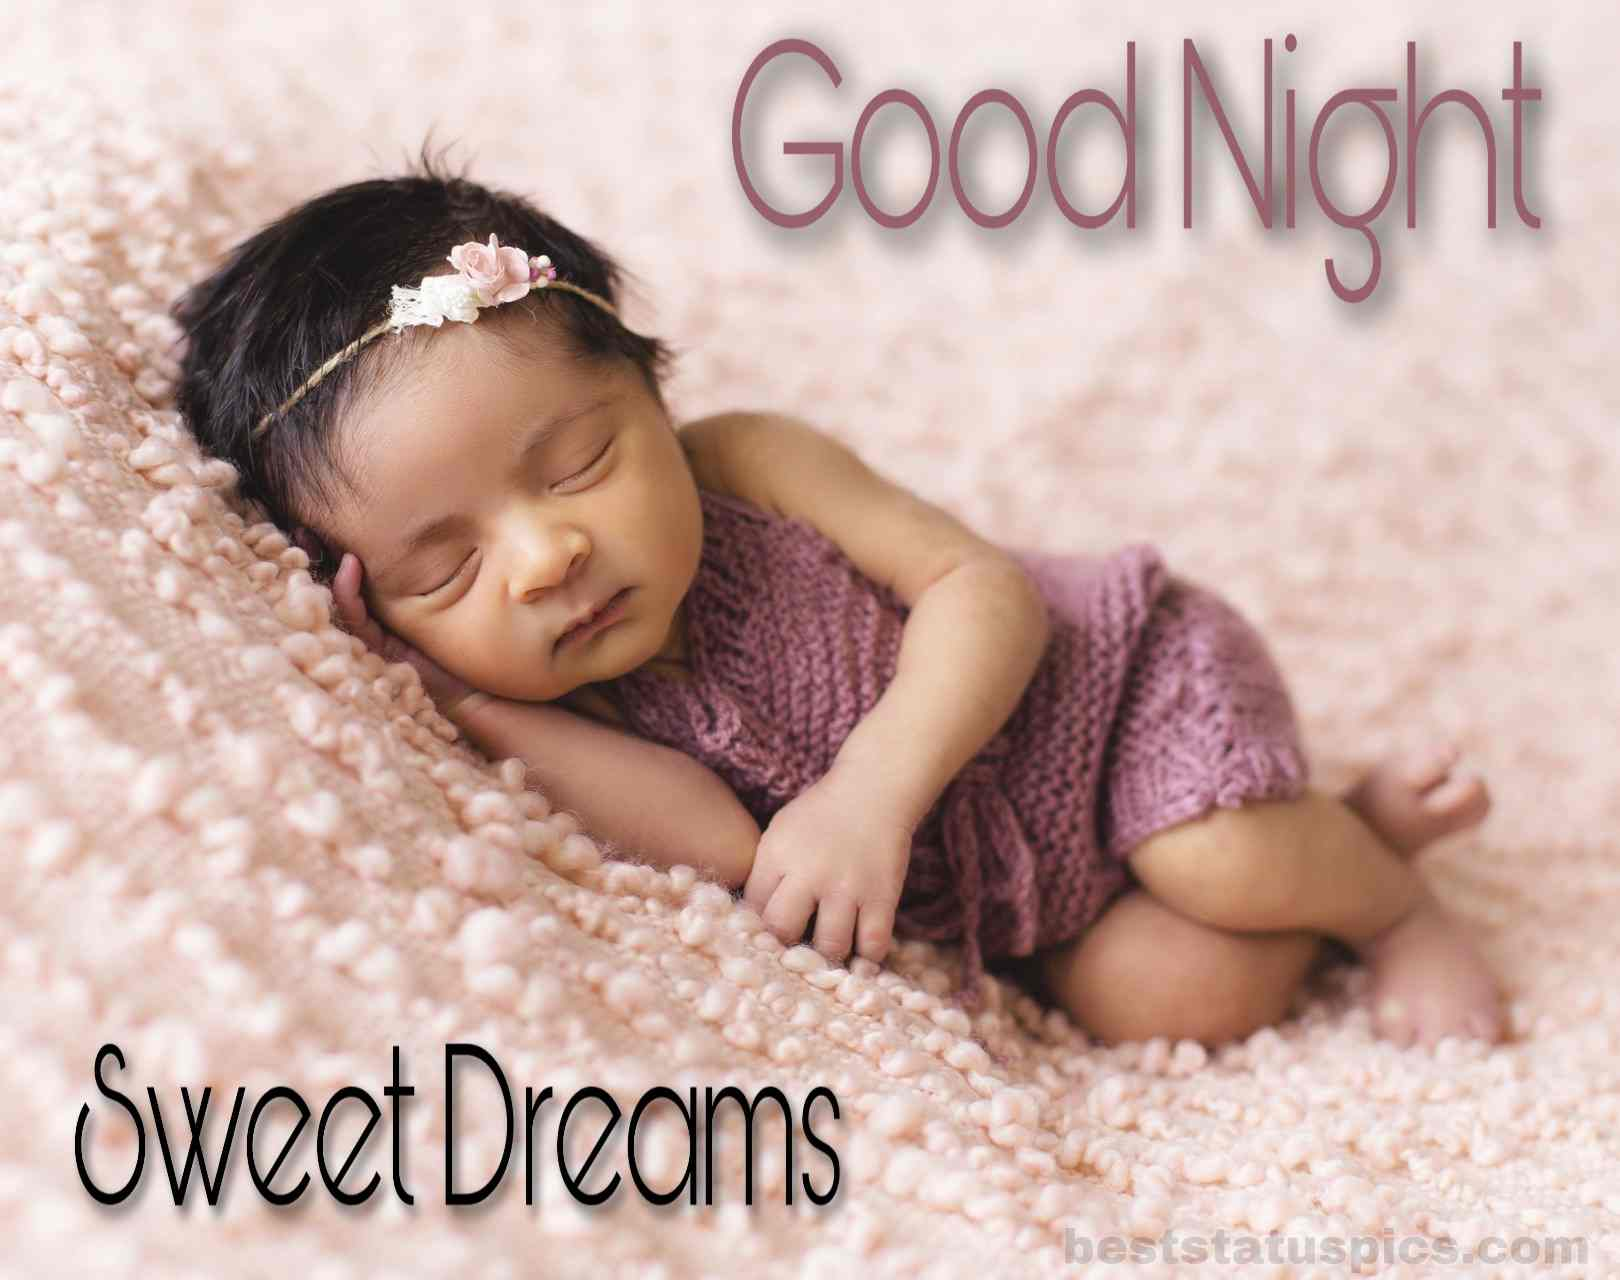 821 Cute Baby Good Night Images Free Download Hd Best Status Pics